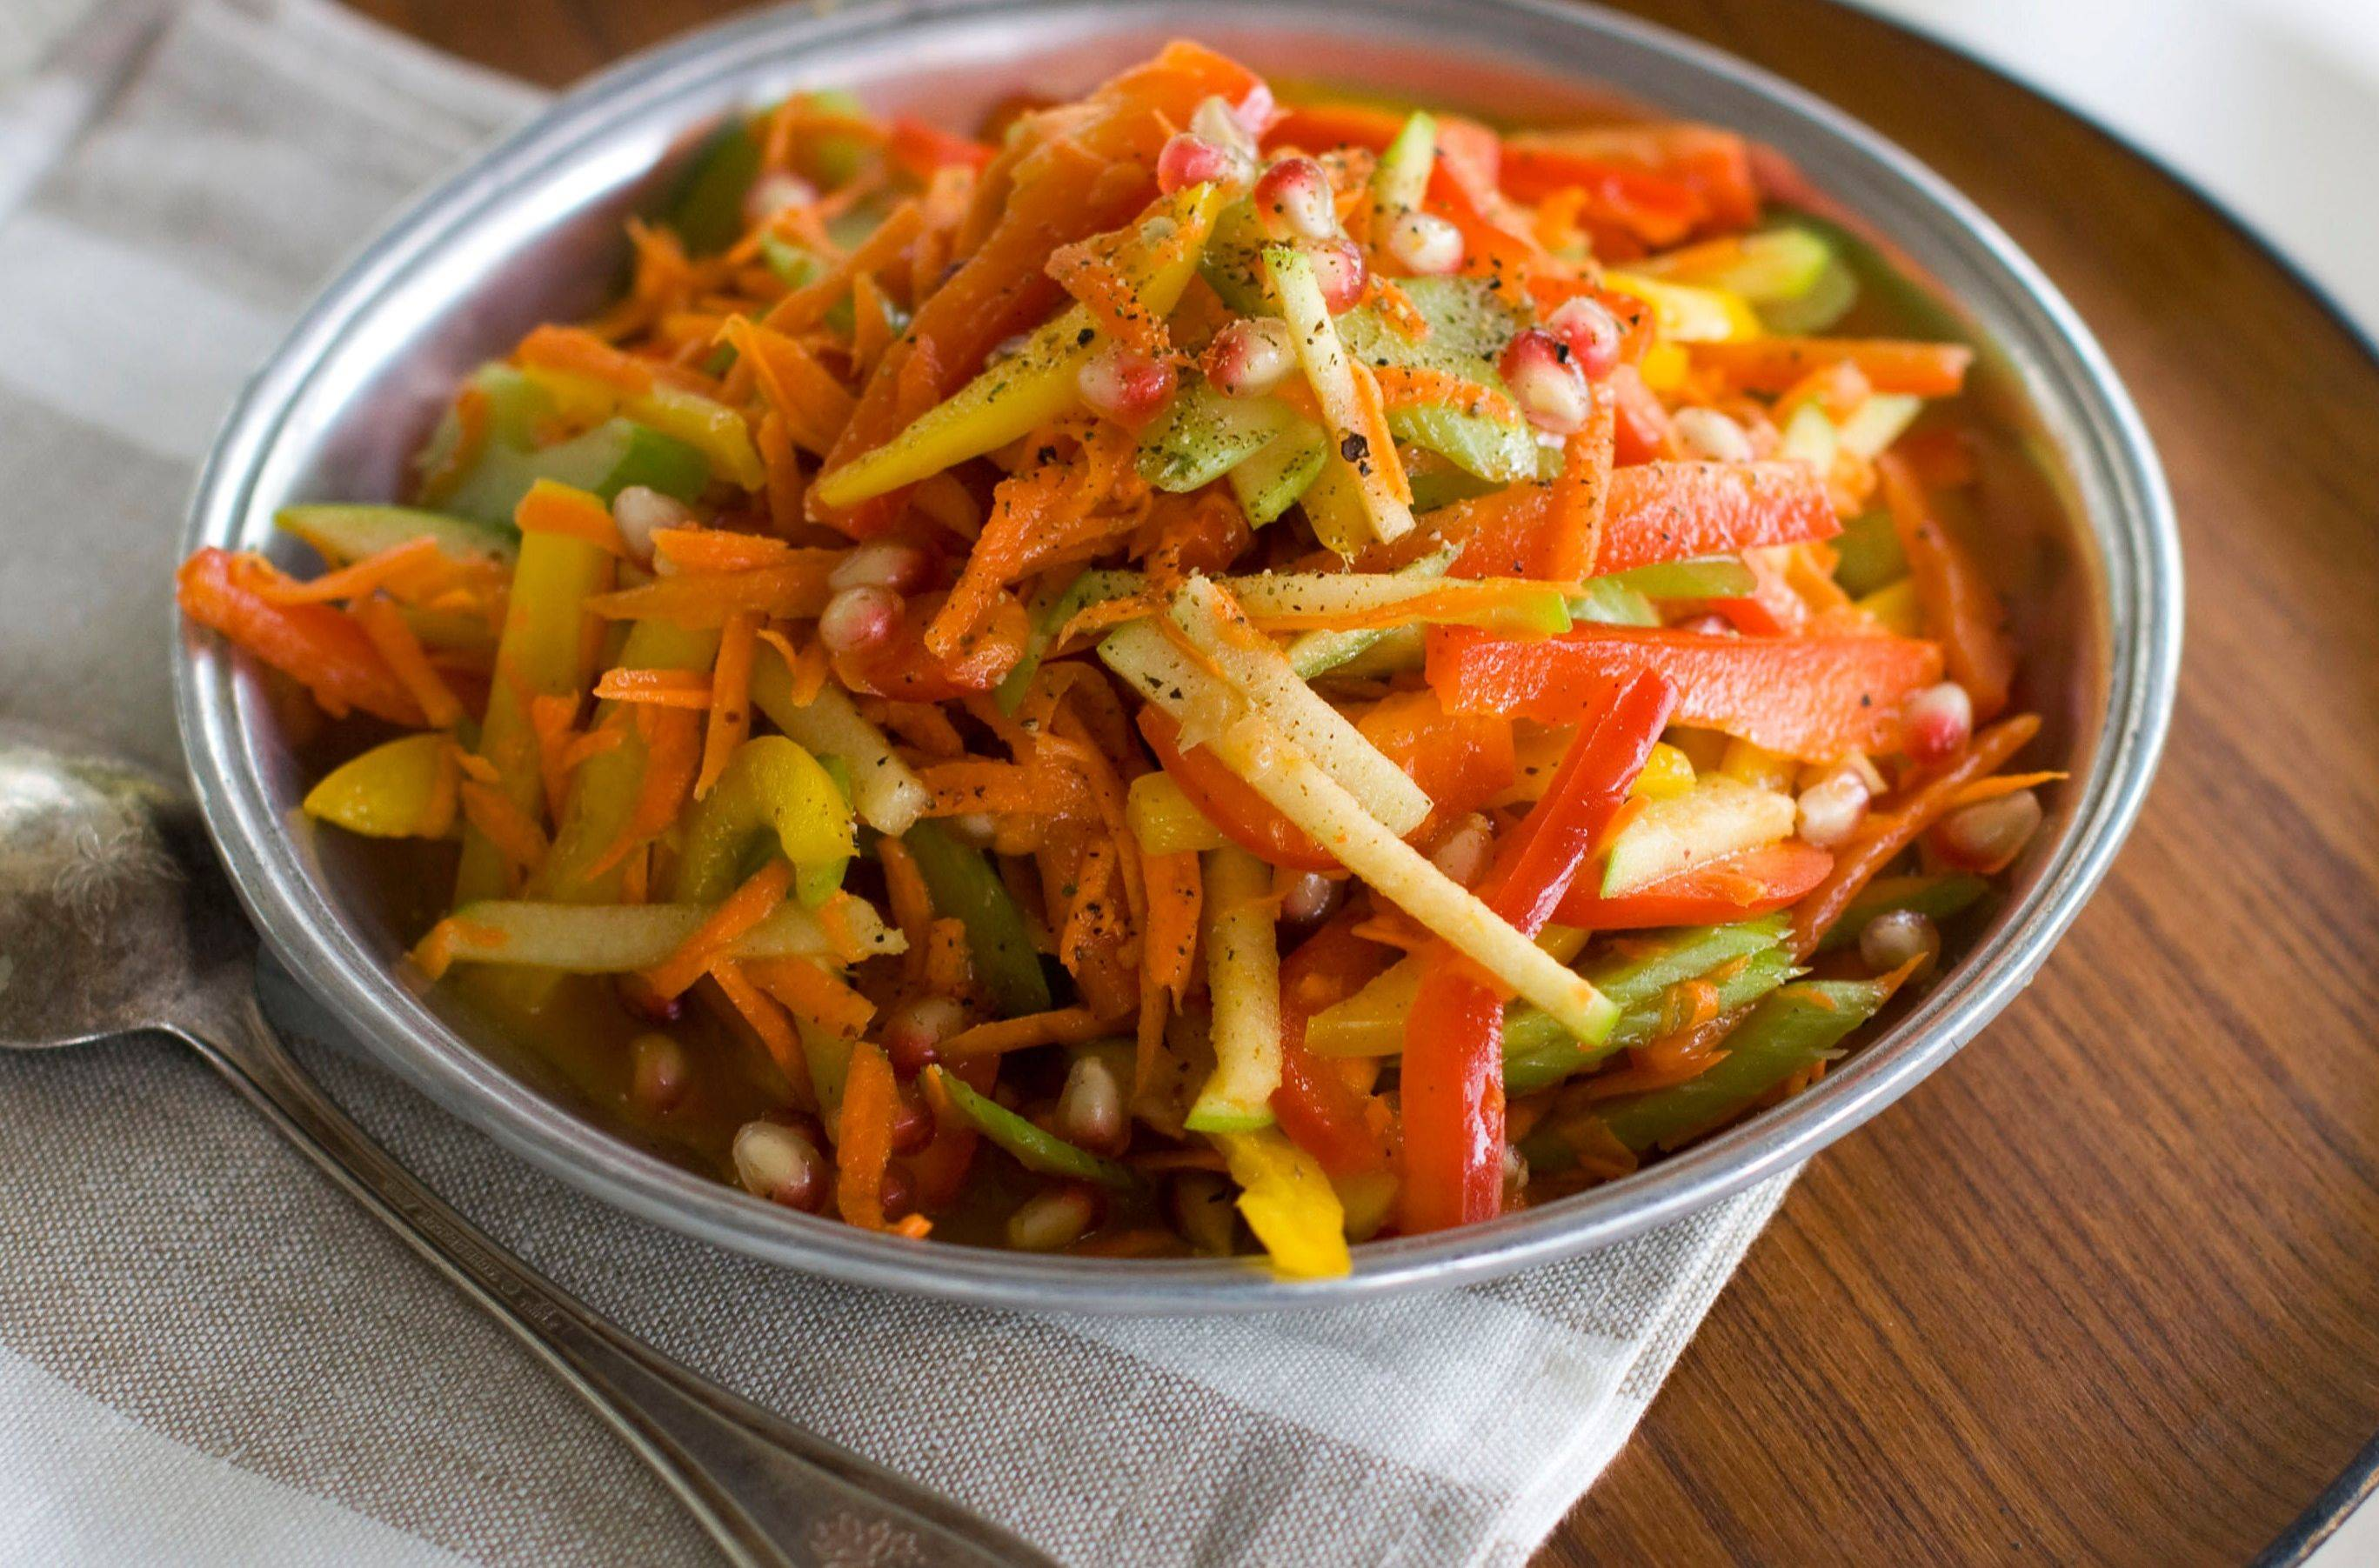 Red bell pepper and apple slaw (also called Celebration Slaw) provides a colorful dish for your holiday table.